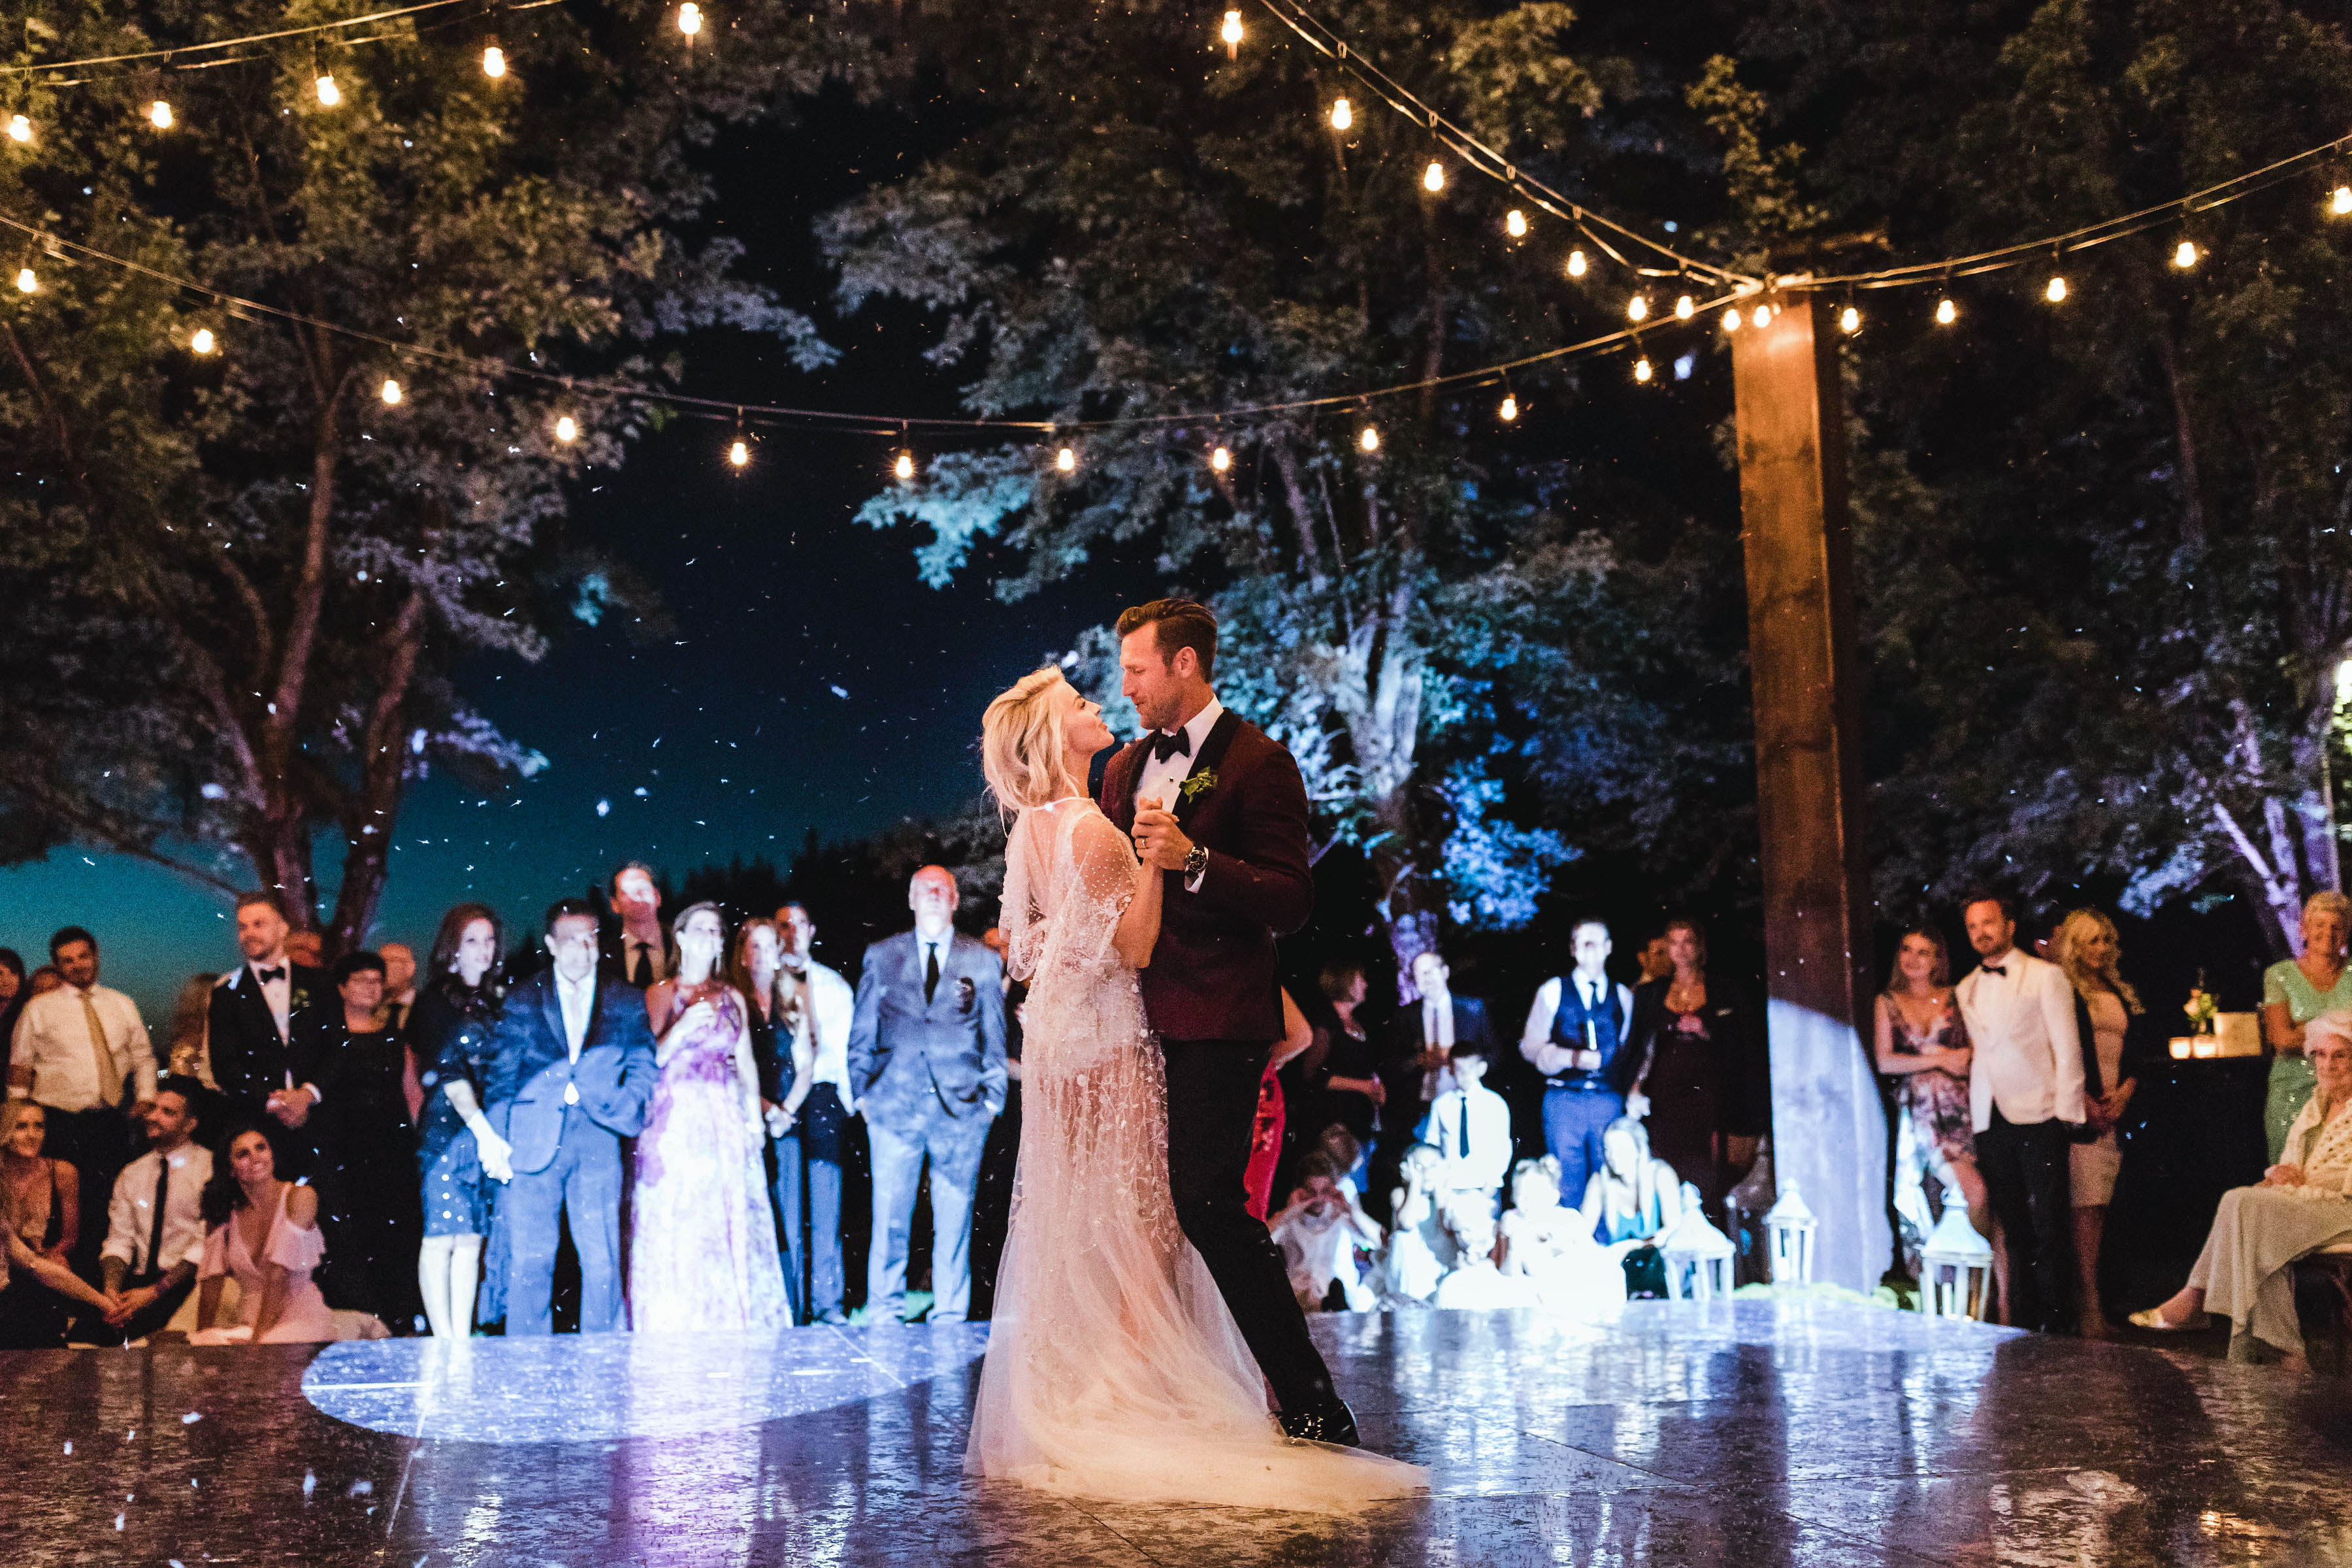 wedding couple first dance on antique mirrored dance floor